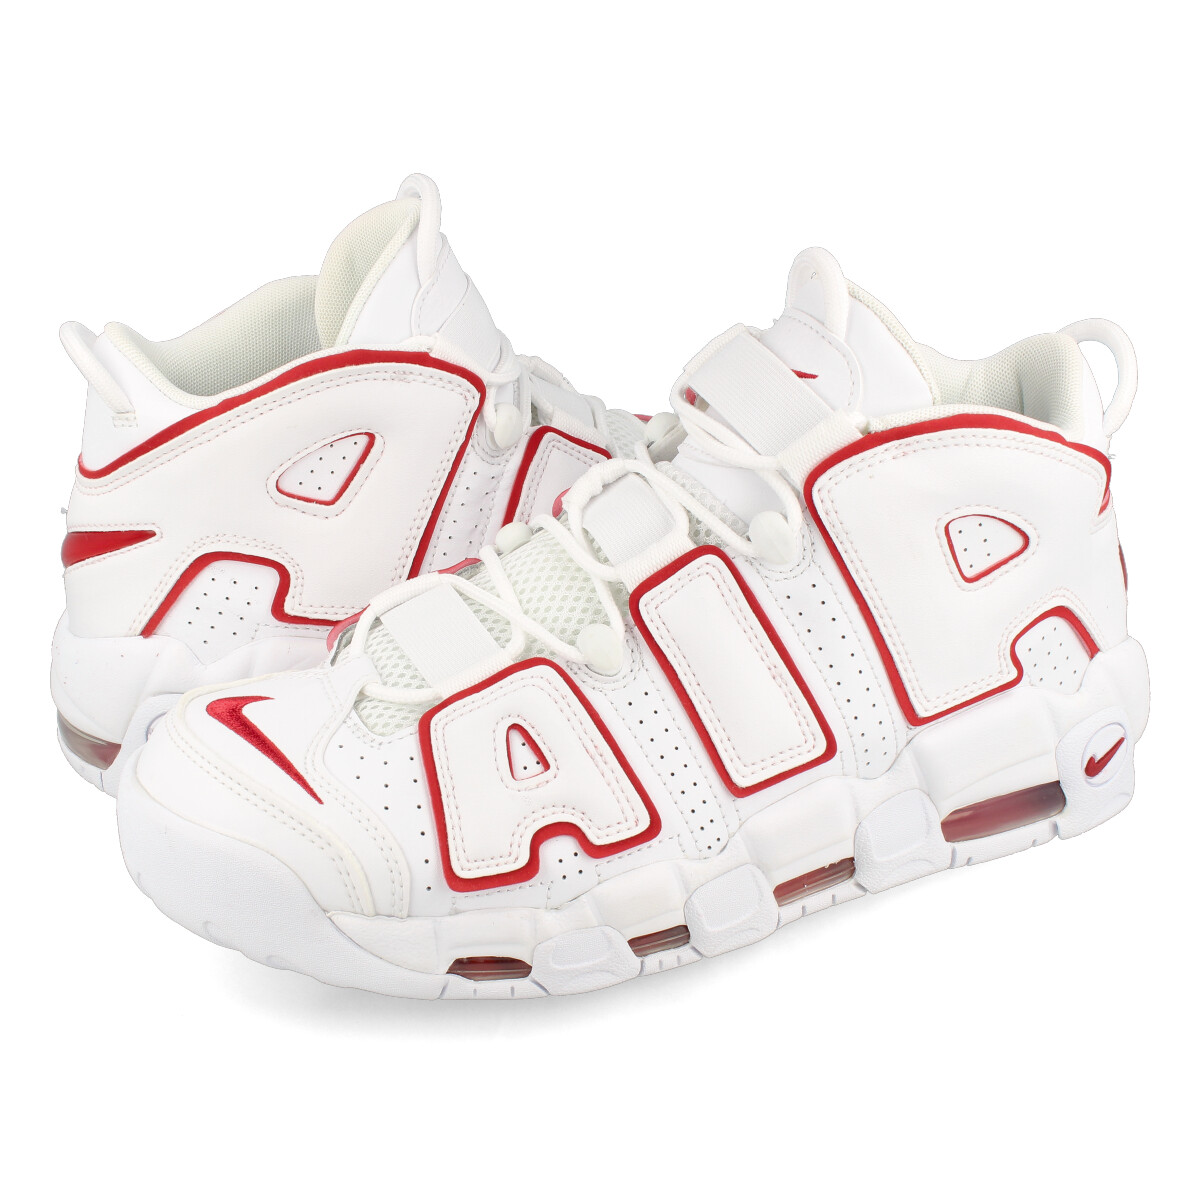 4f8850b330 NIKE AIR MORE UPTEMPO 96 Nike more up tempo 96 WHITE/VARSITY RED/WHITE ...